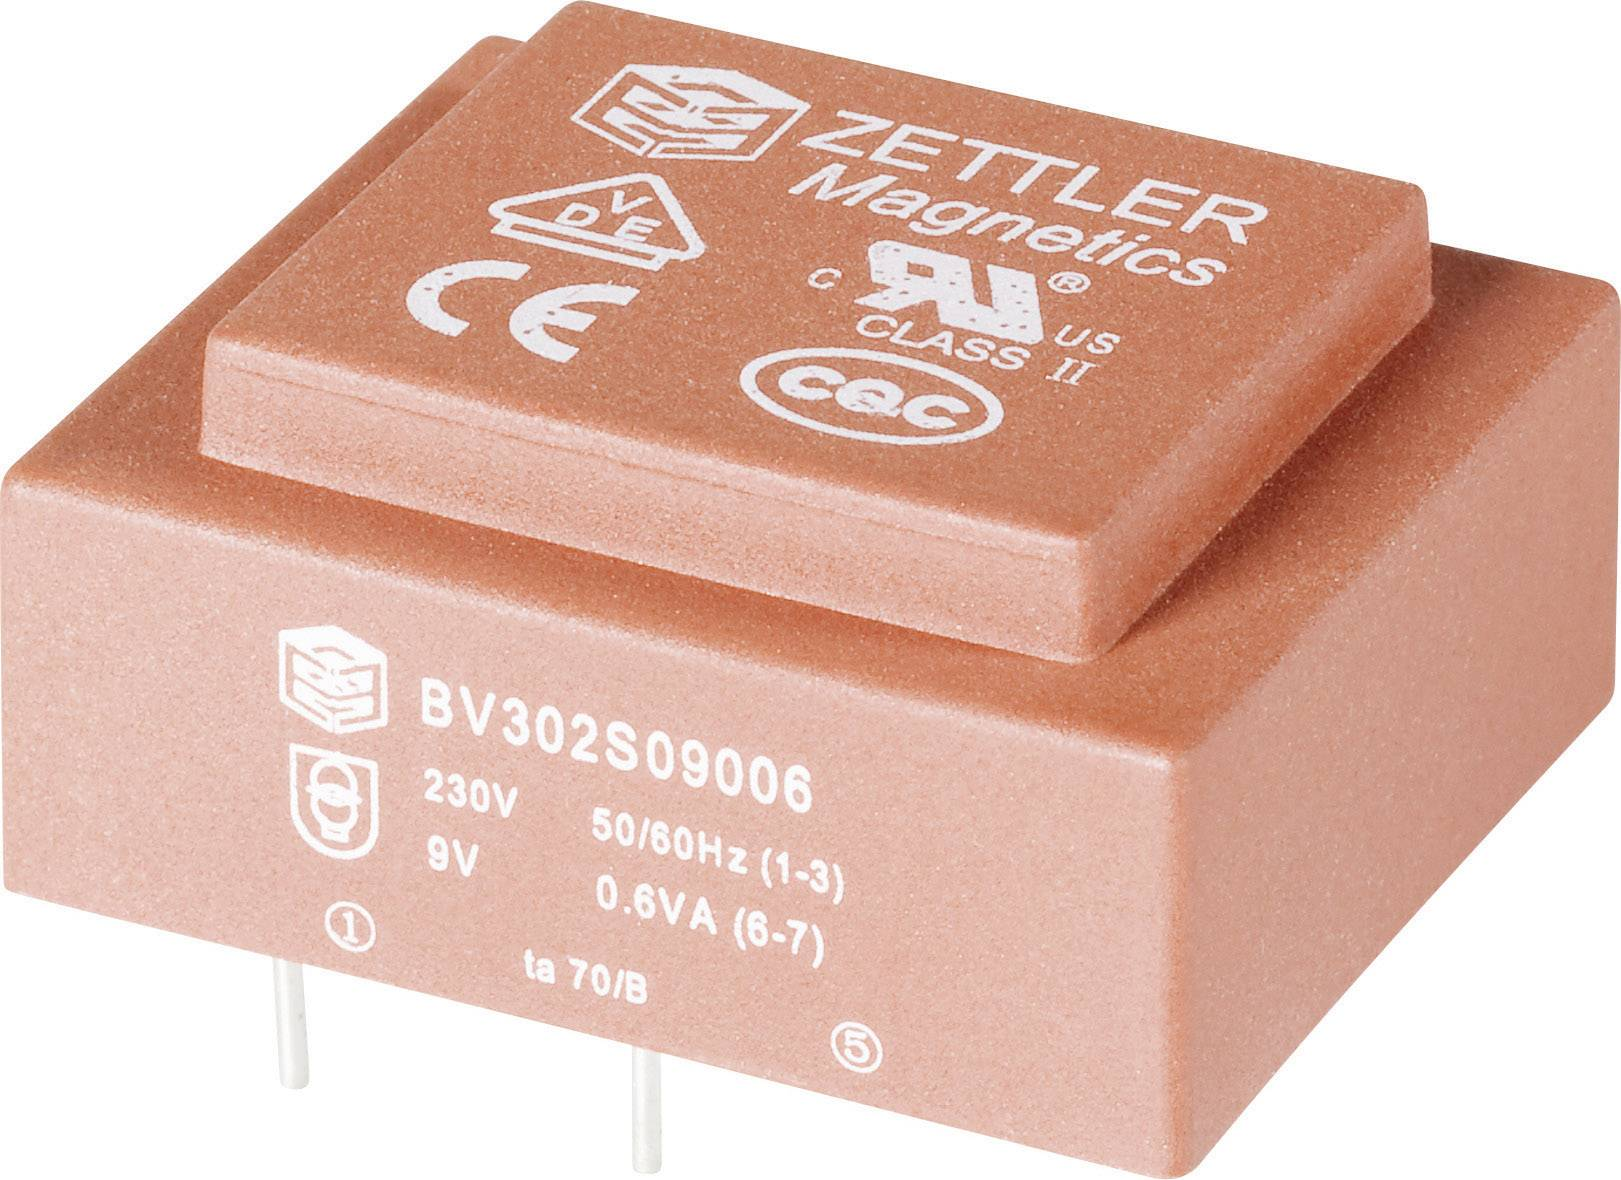 Transformátor do DPS Zettler Magnetics El30, 230 V/9 V, 66 mA, 1,5 VA